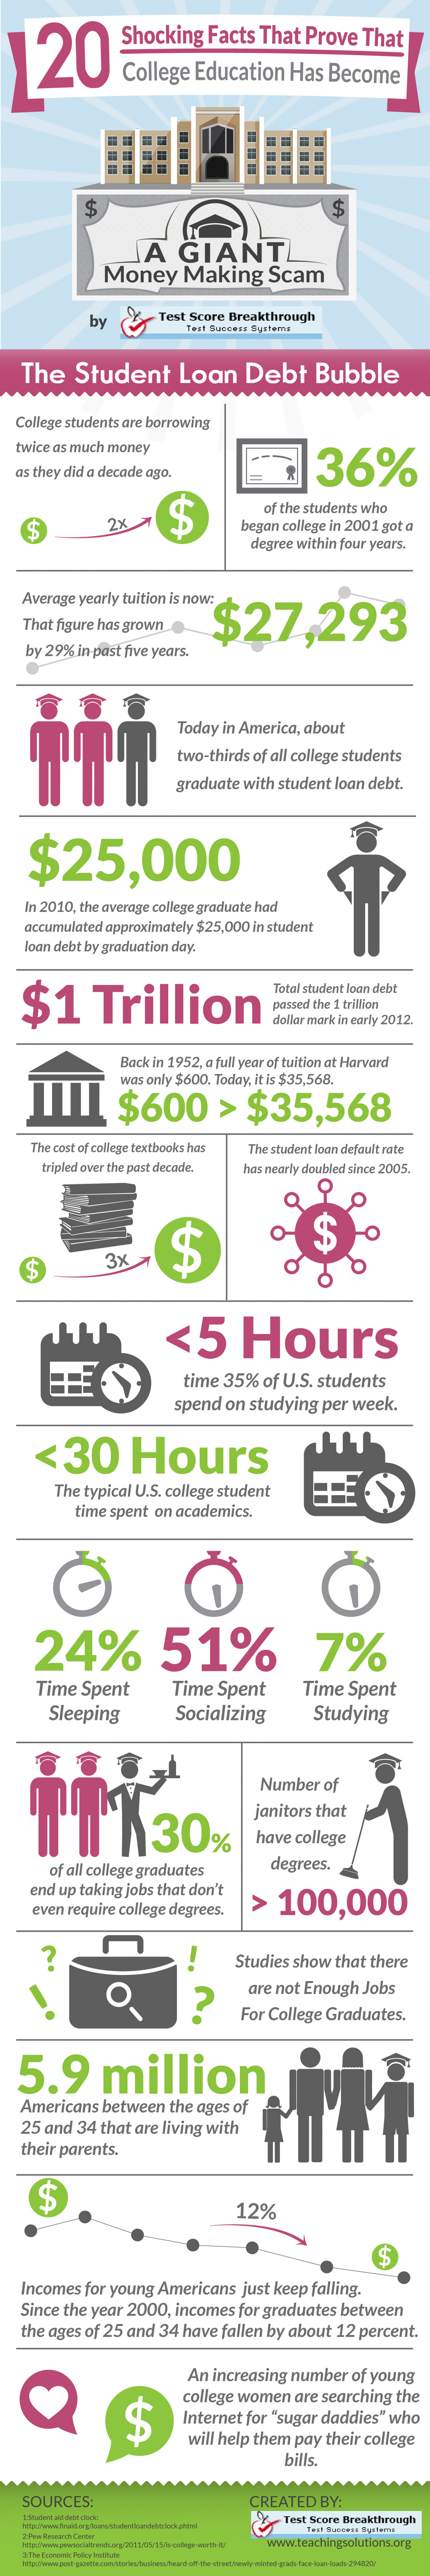 Why The U.S. Student Loan Bubble Is Going To Burst Infographic